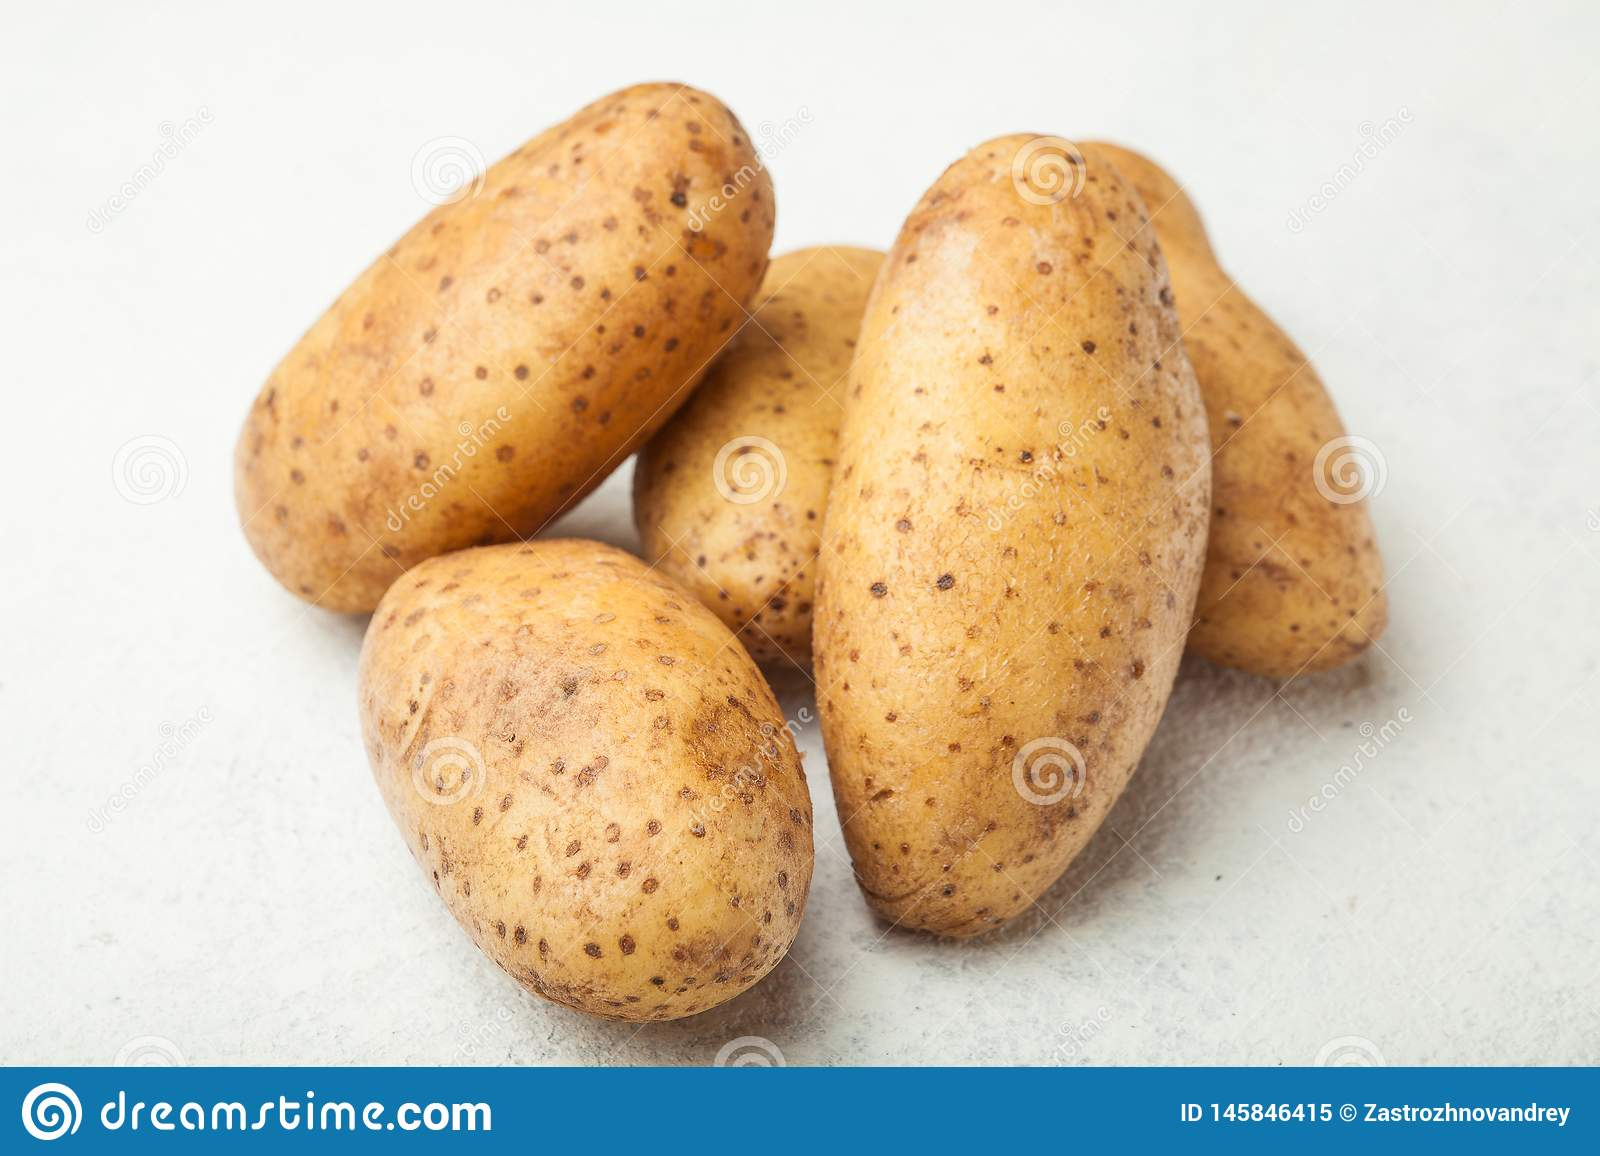 Fresh young potatoes on a white table